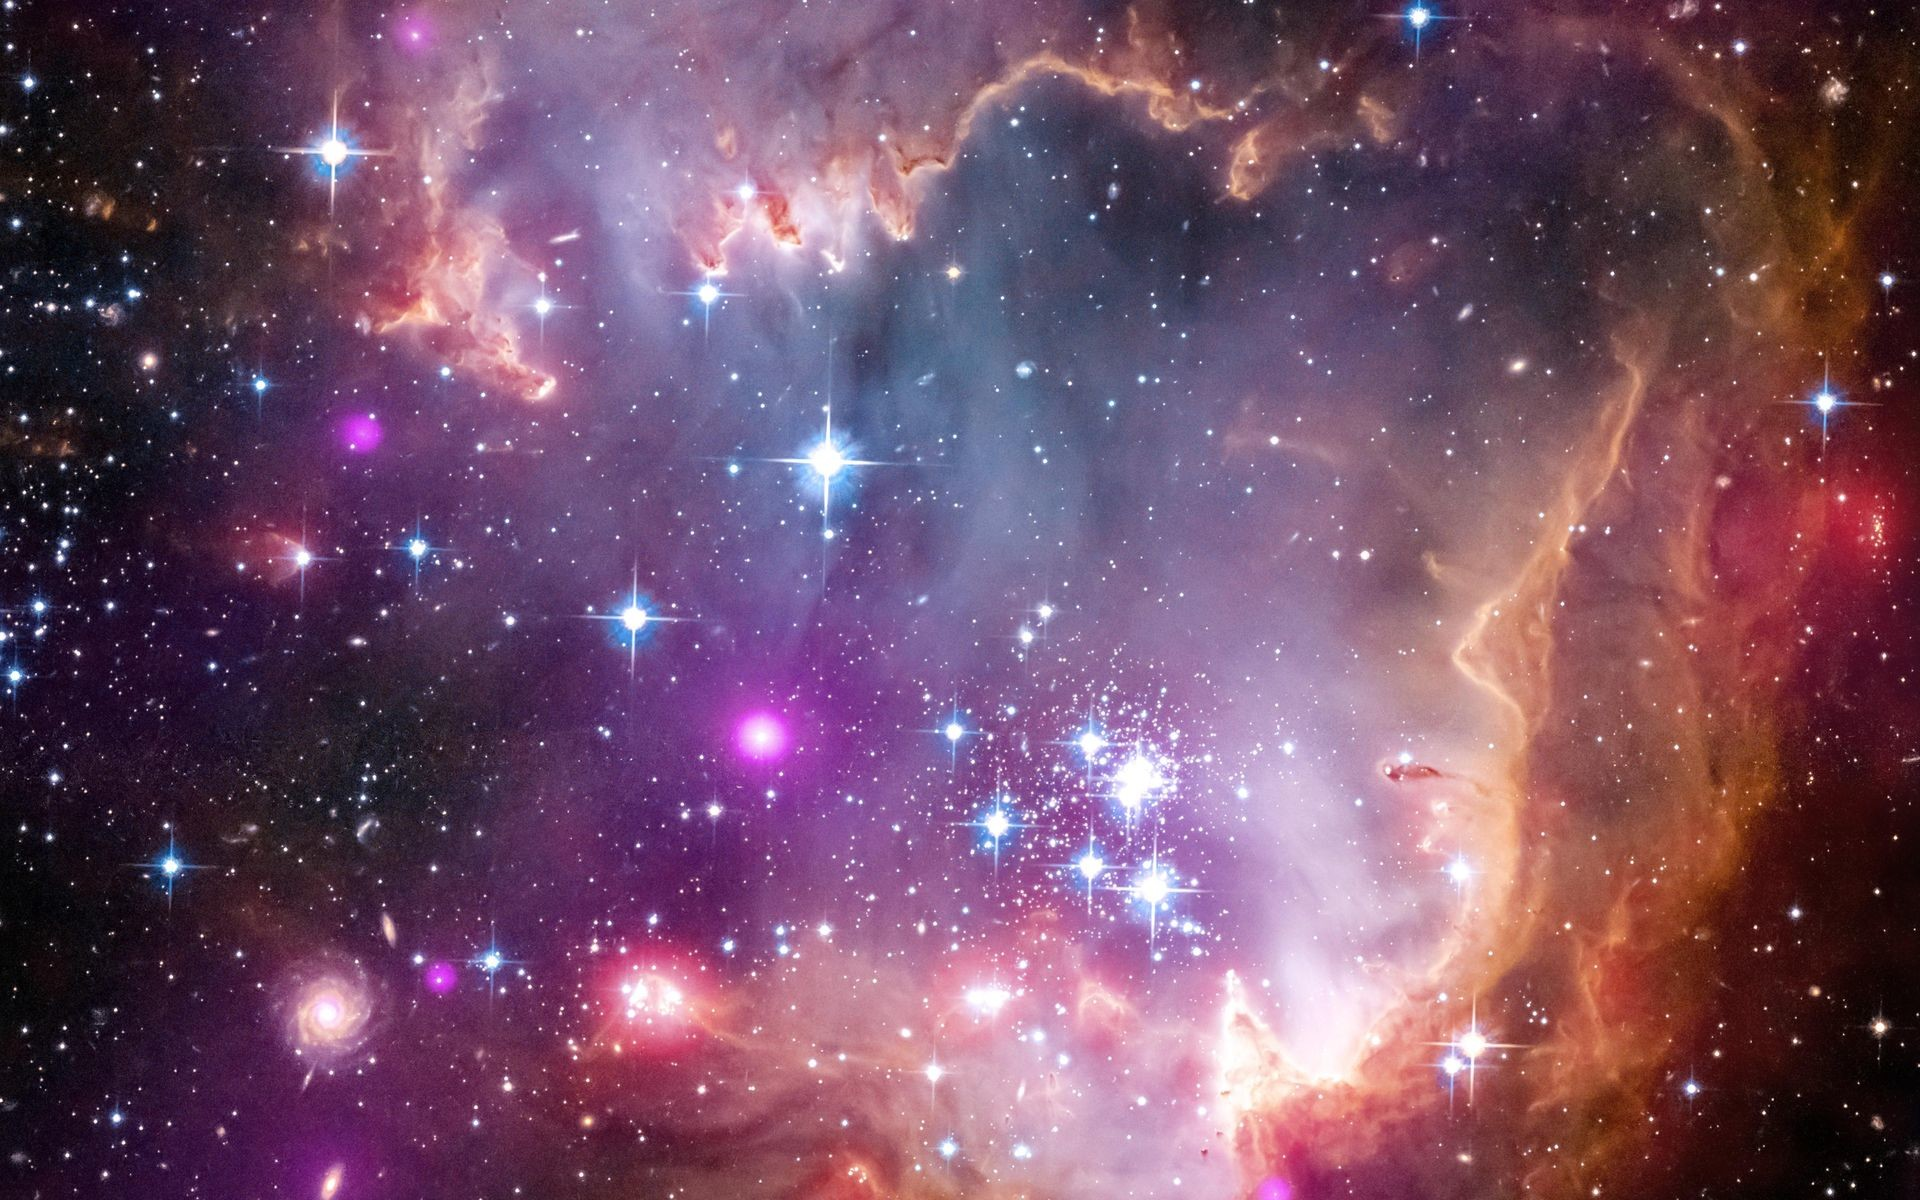 The tip of the 'wing' of the Small Magellanic Cloud galaxy is dazzling in